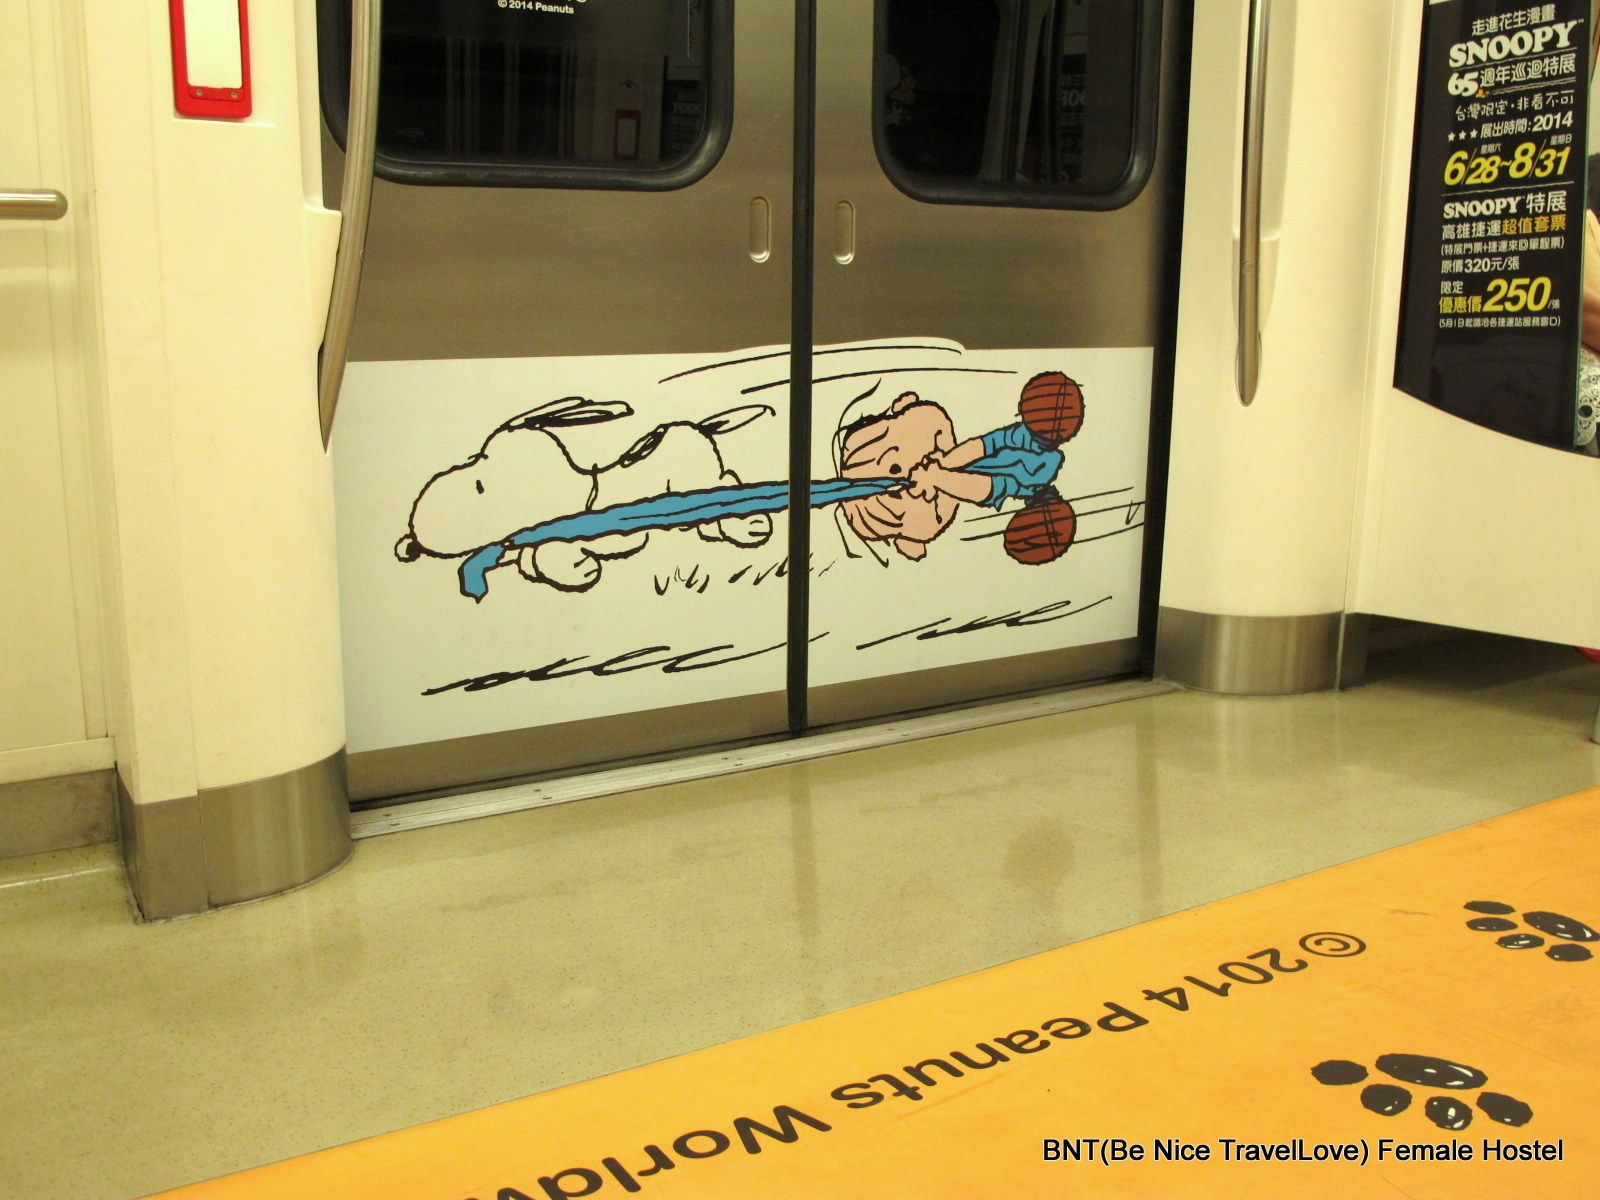 Snoopy by MRT in Taiwan 高雄.